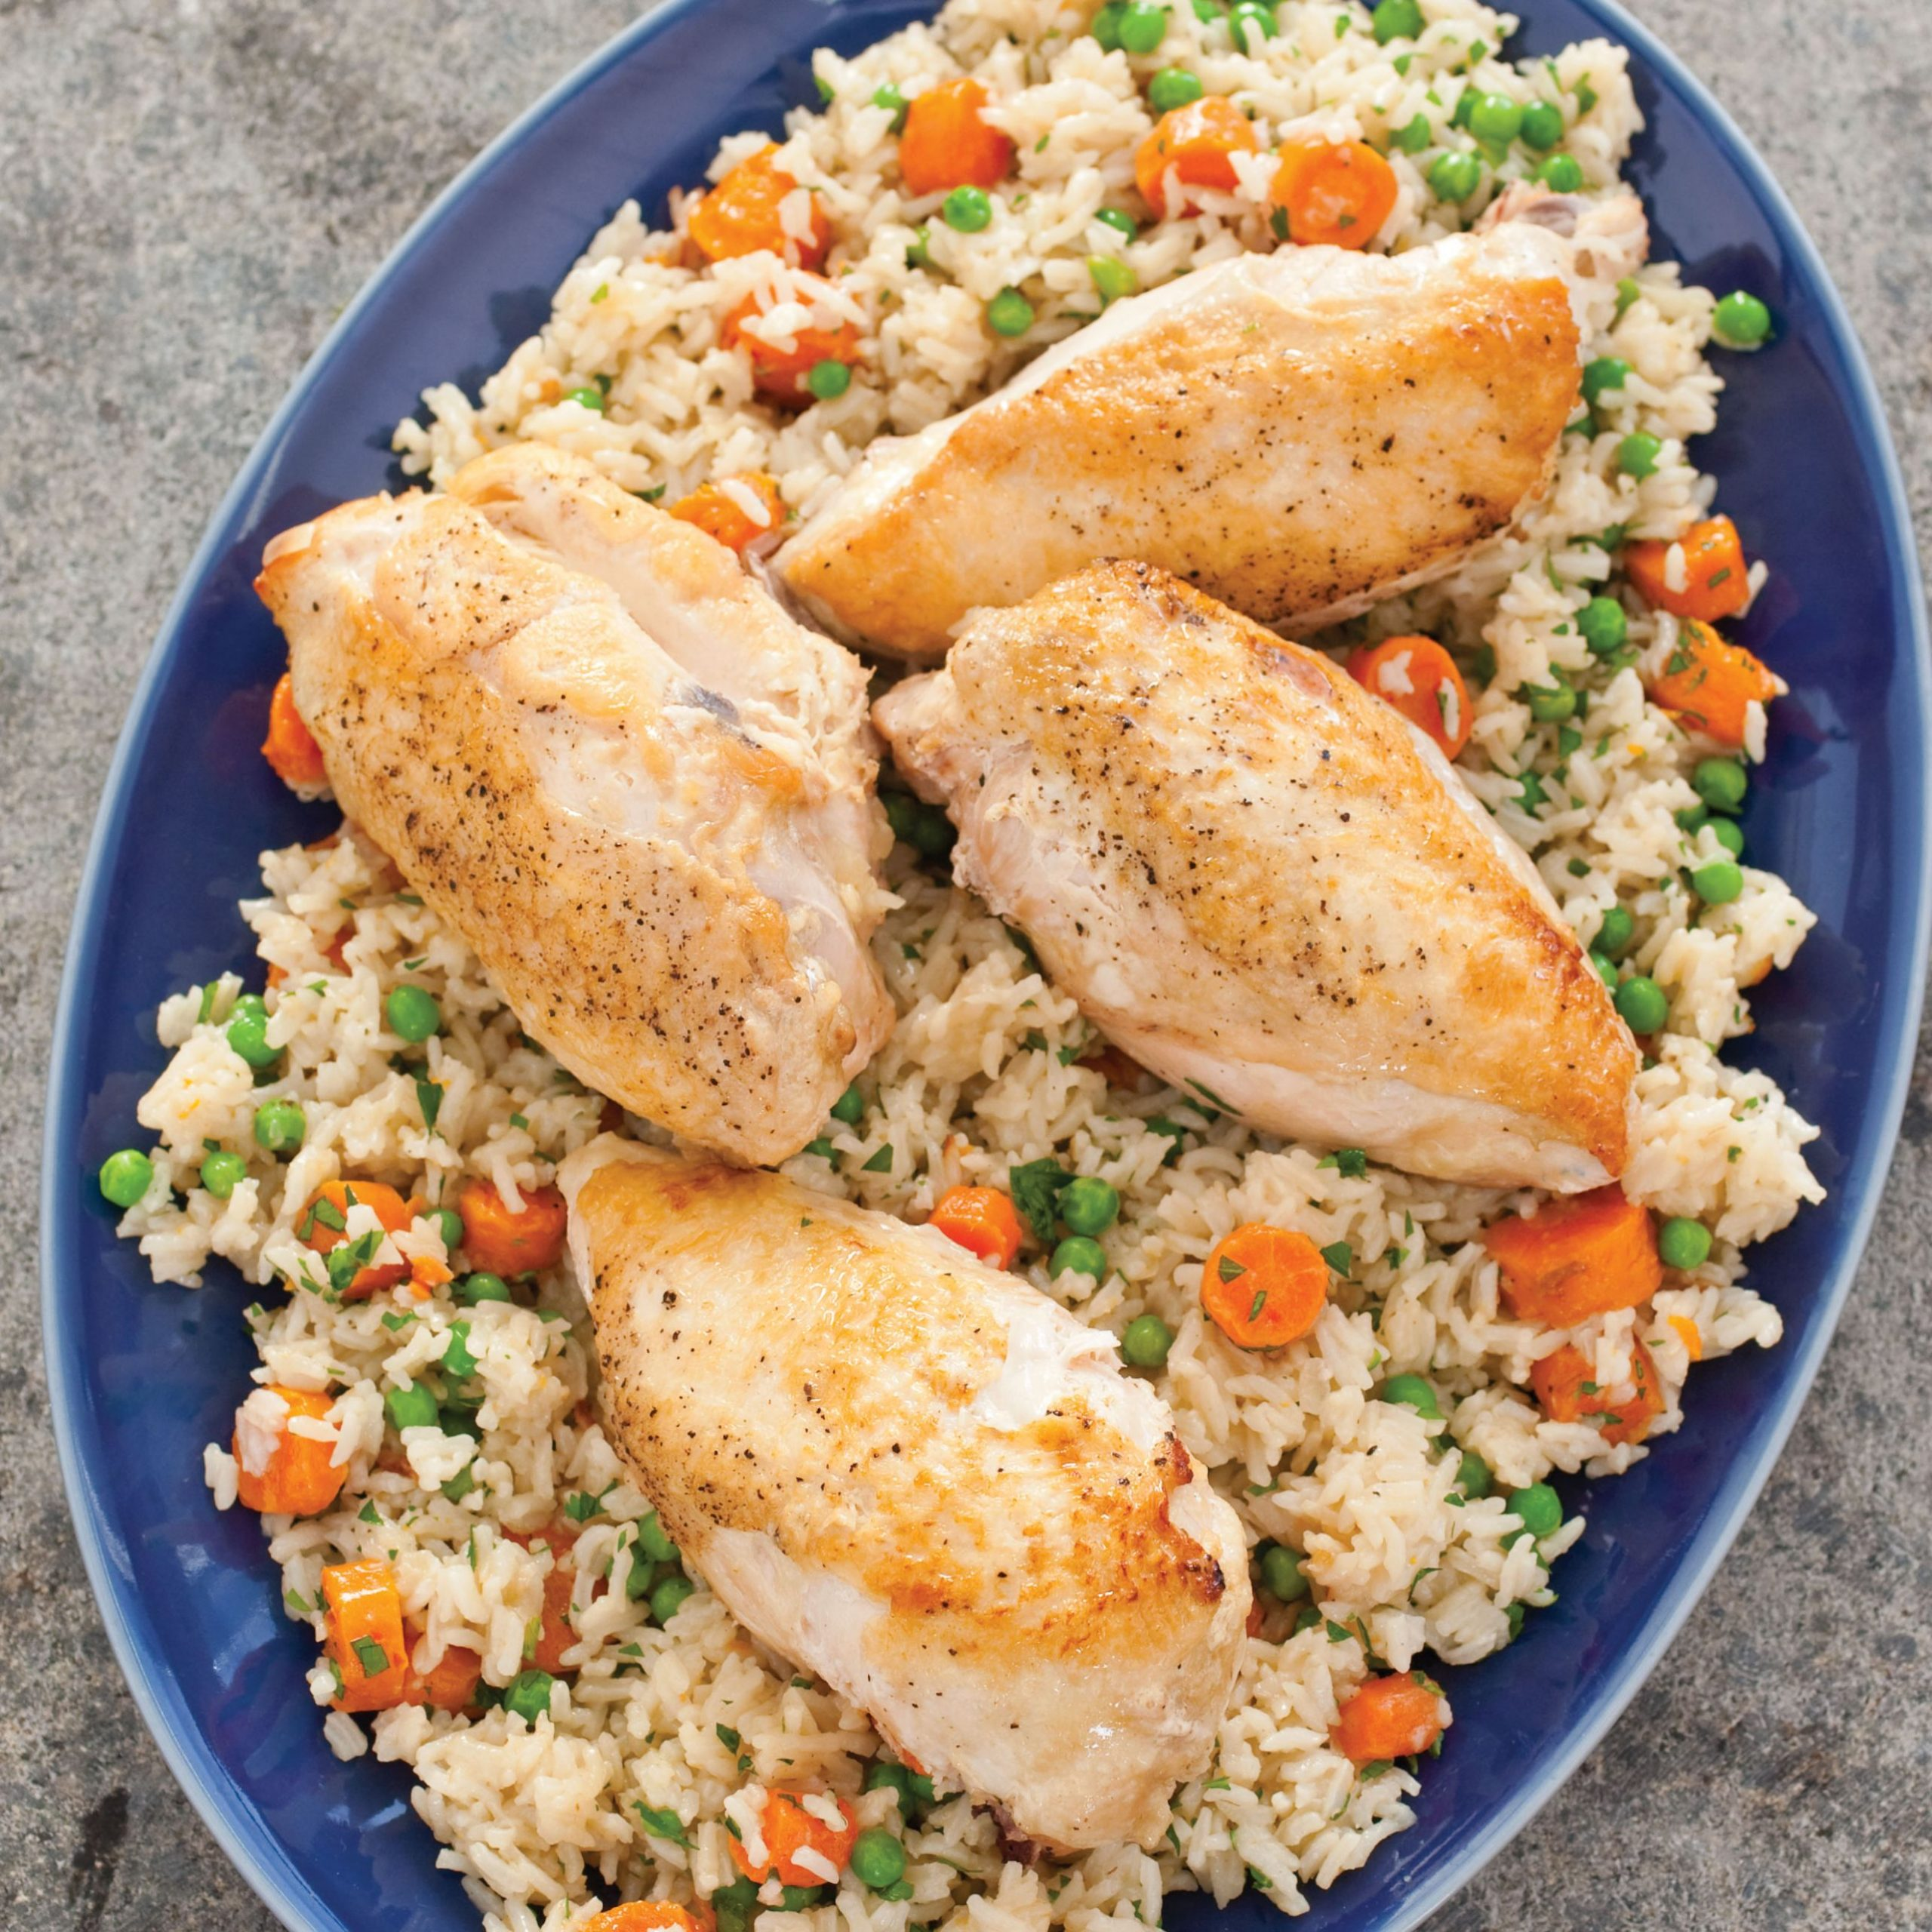 Pressure-Cooker Easy Chicken and Rice - Recipes Chicken In Pressure Cooker